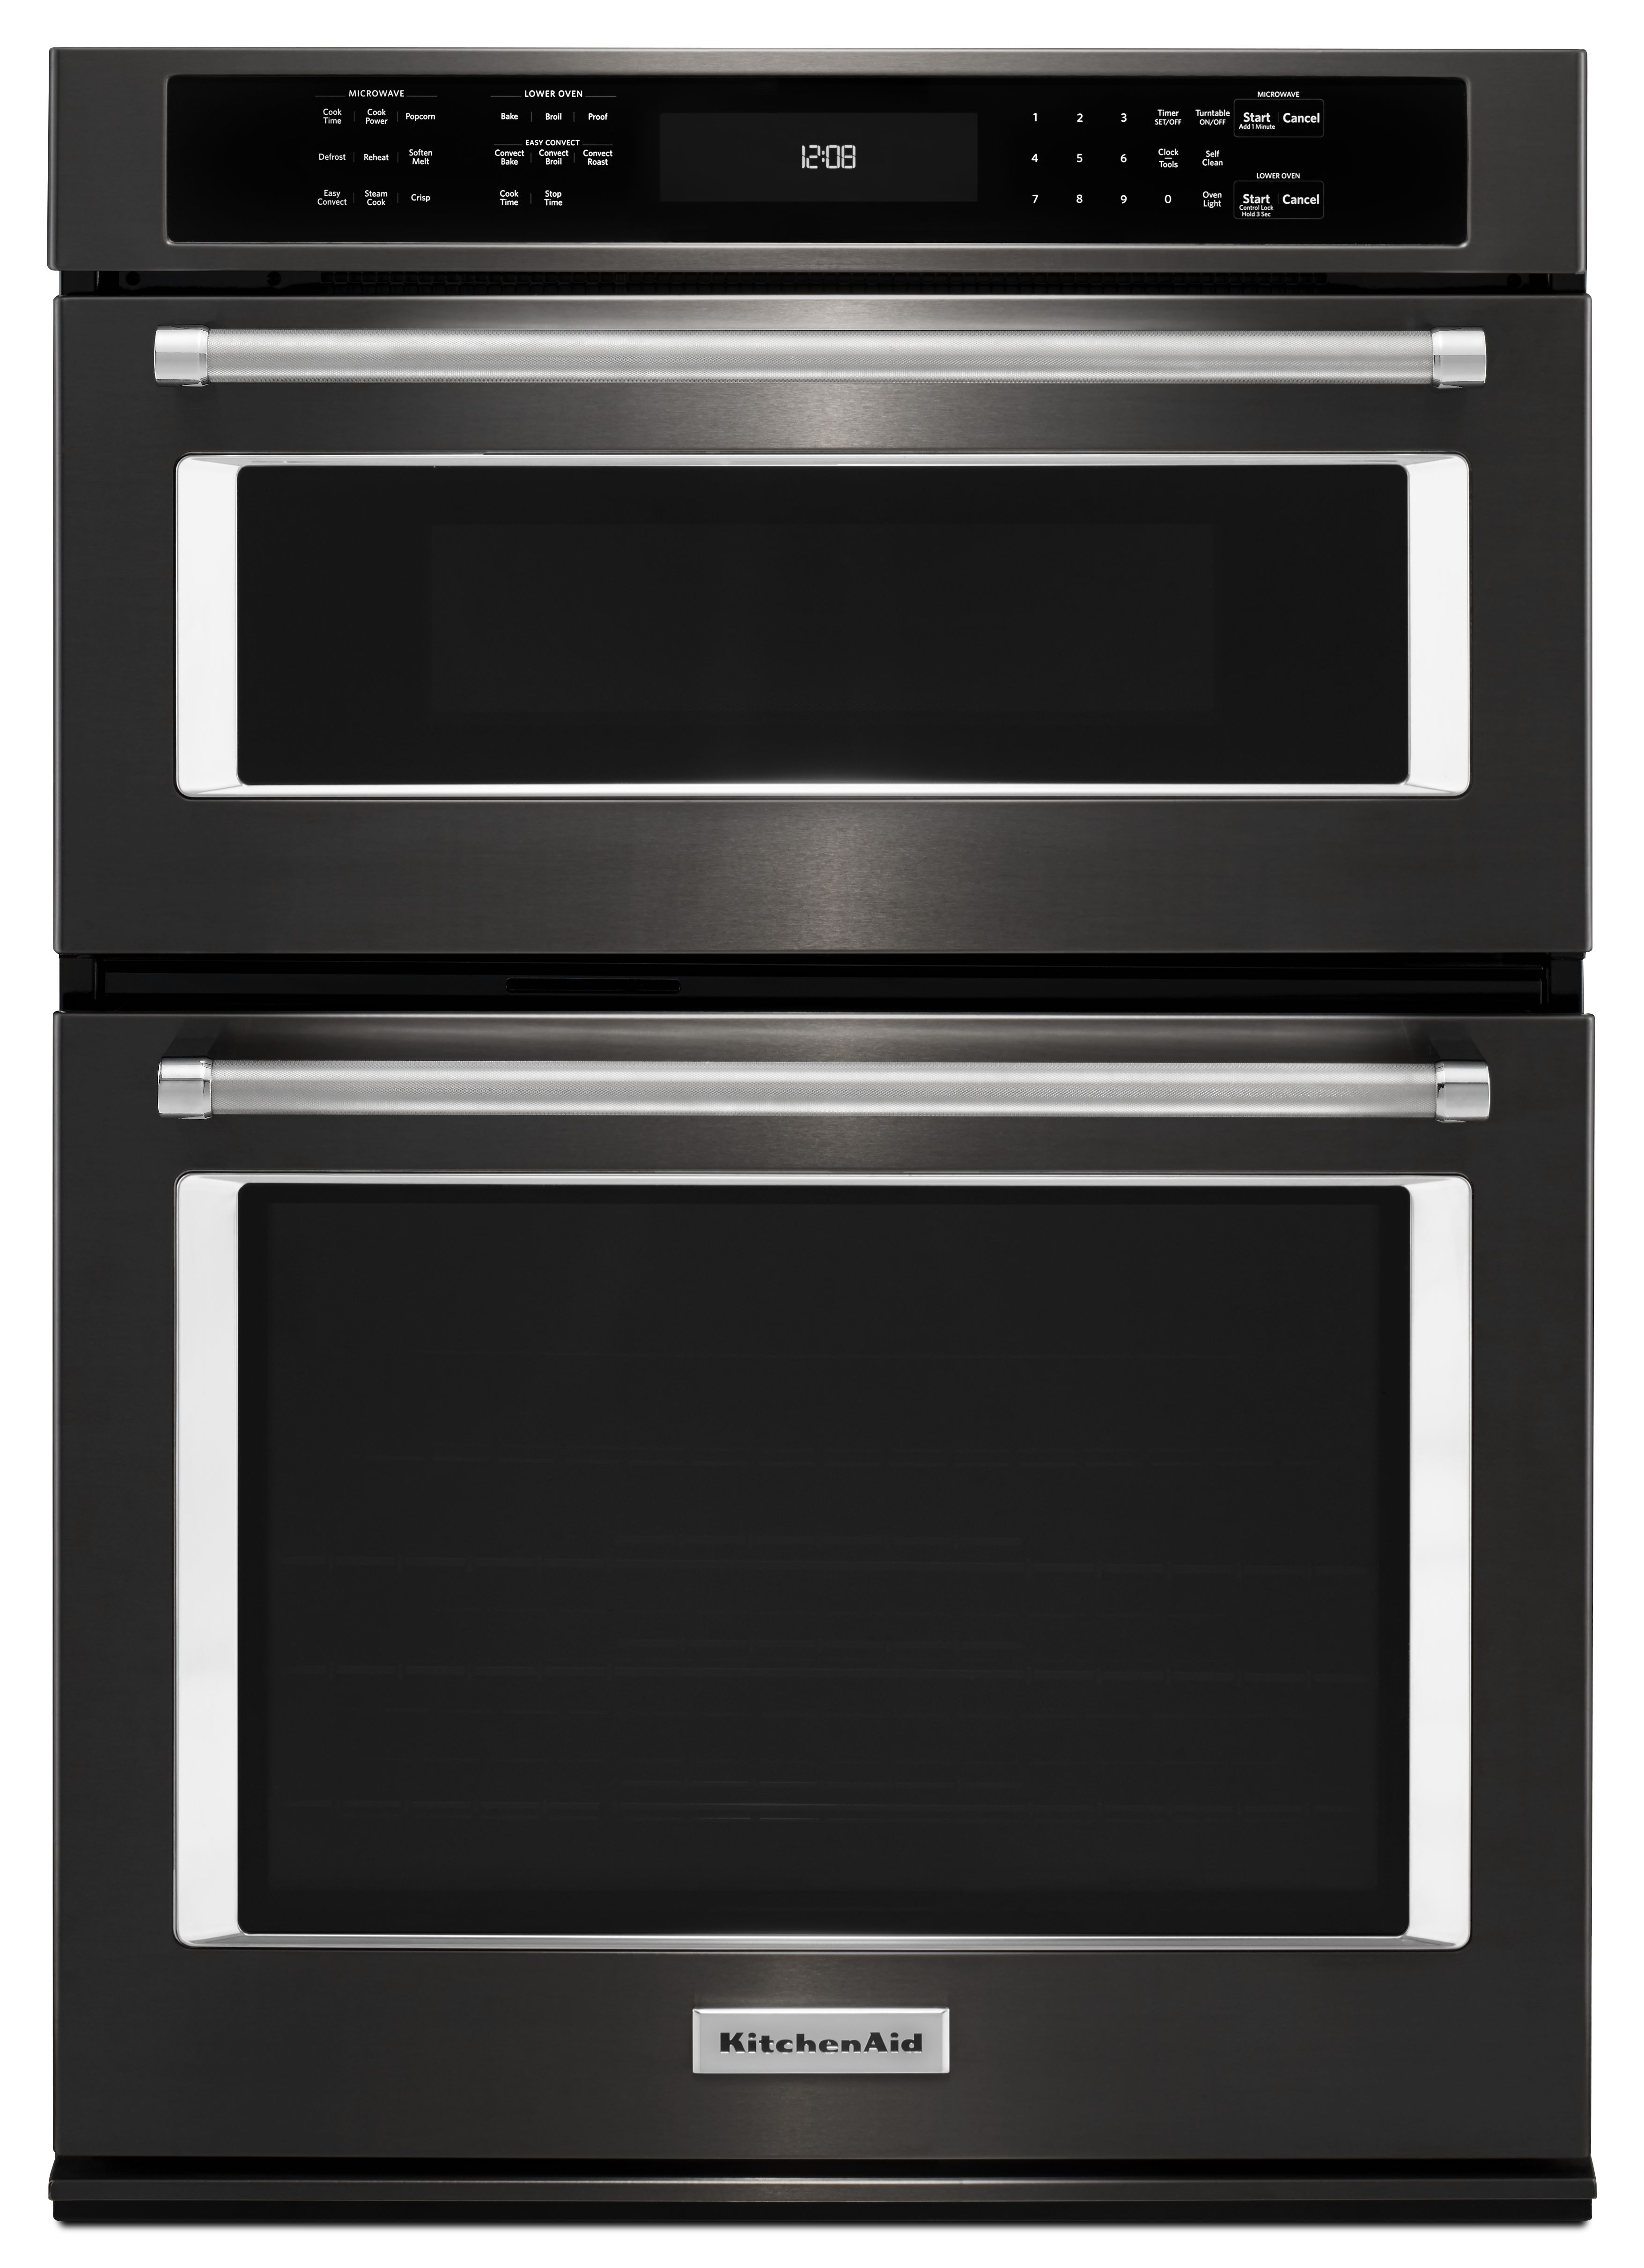 Reviews For Kitchenaid 30 Electric Oven Microwave Combo